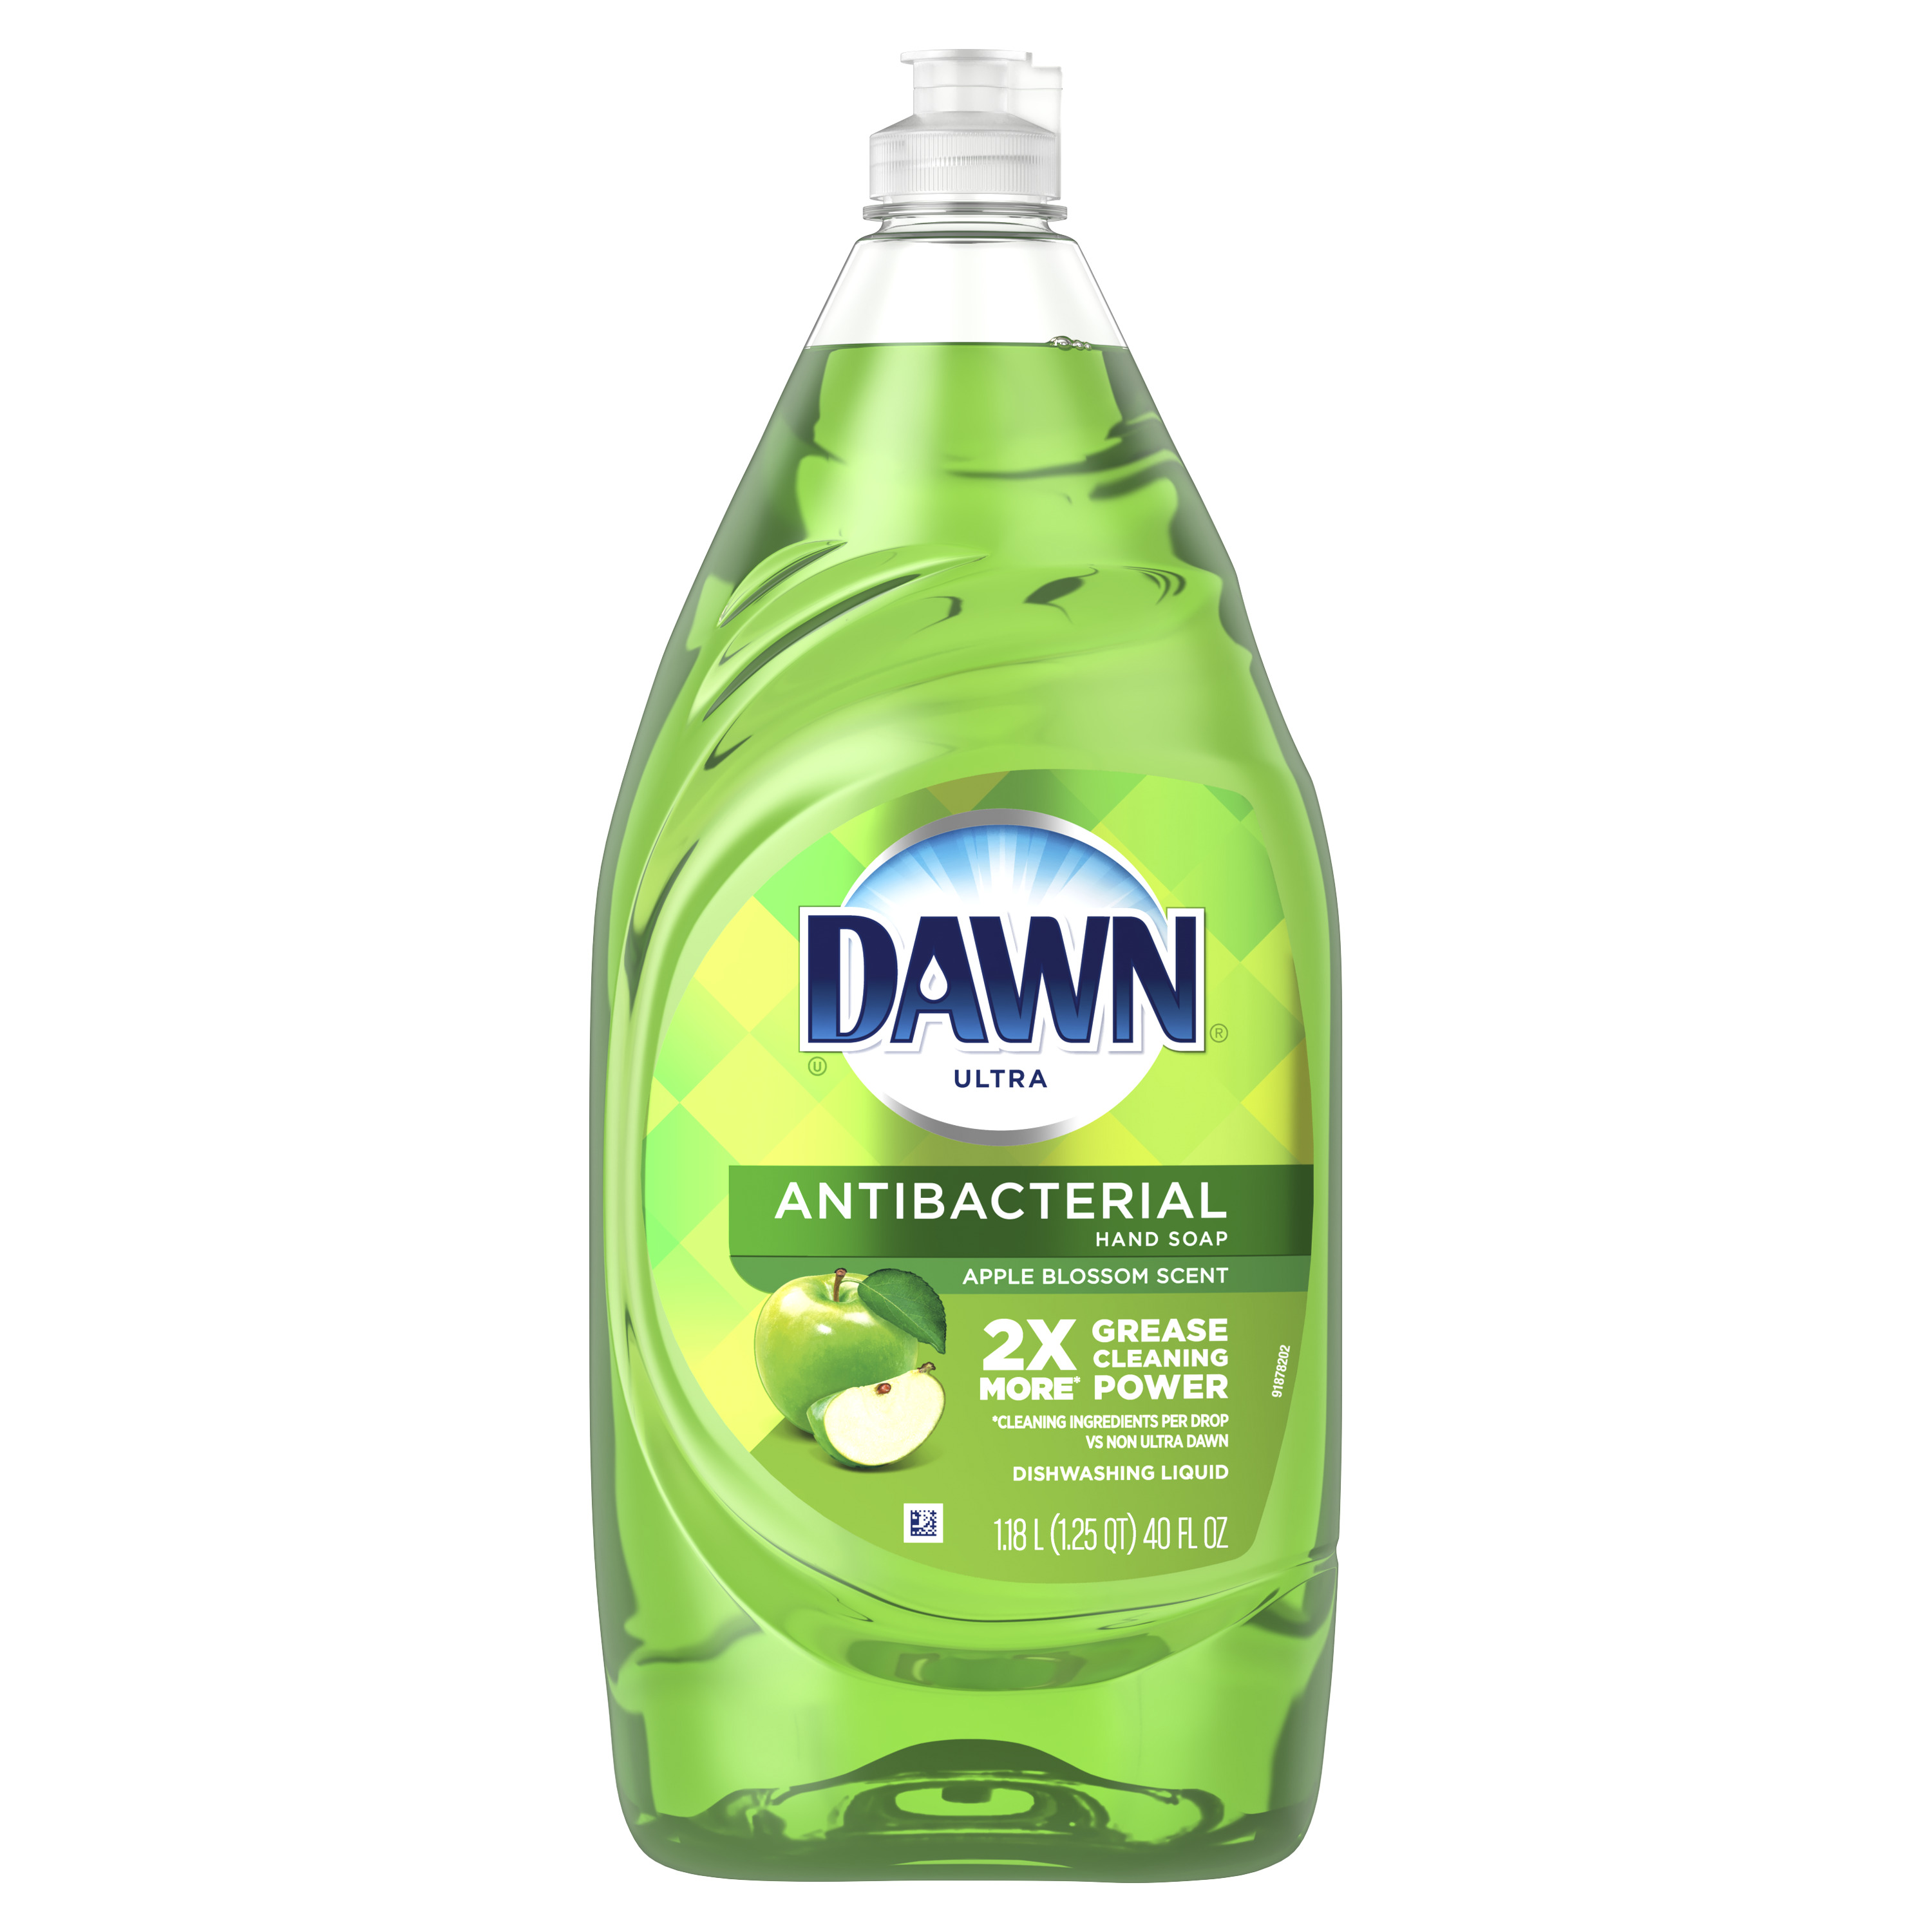 Dawn Ultra Antibacterial Hand Soap, Dishwashing Liquid Dish Soap, Apple Blossom Scent, 40 fl oz